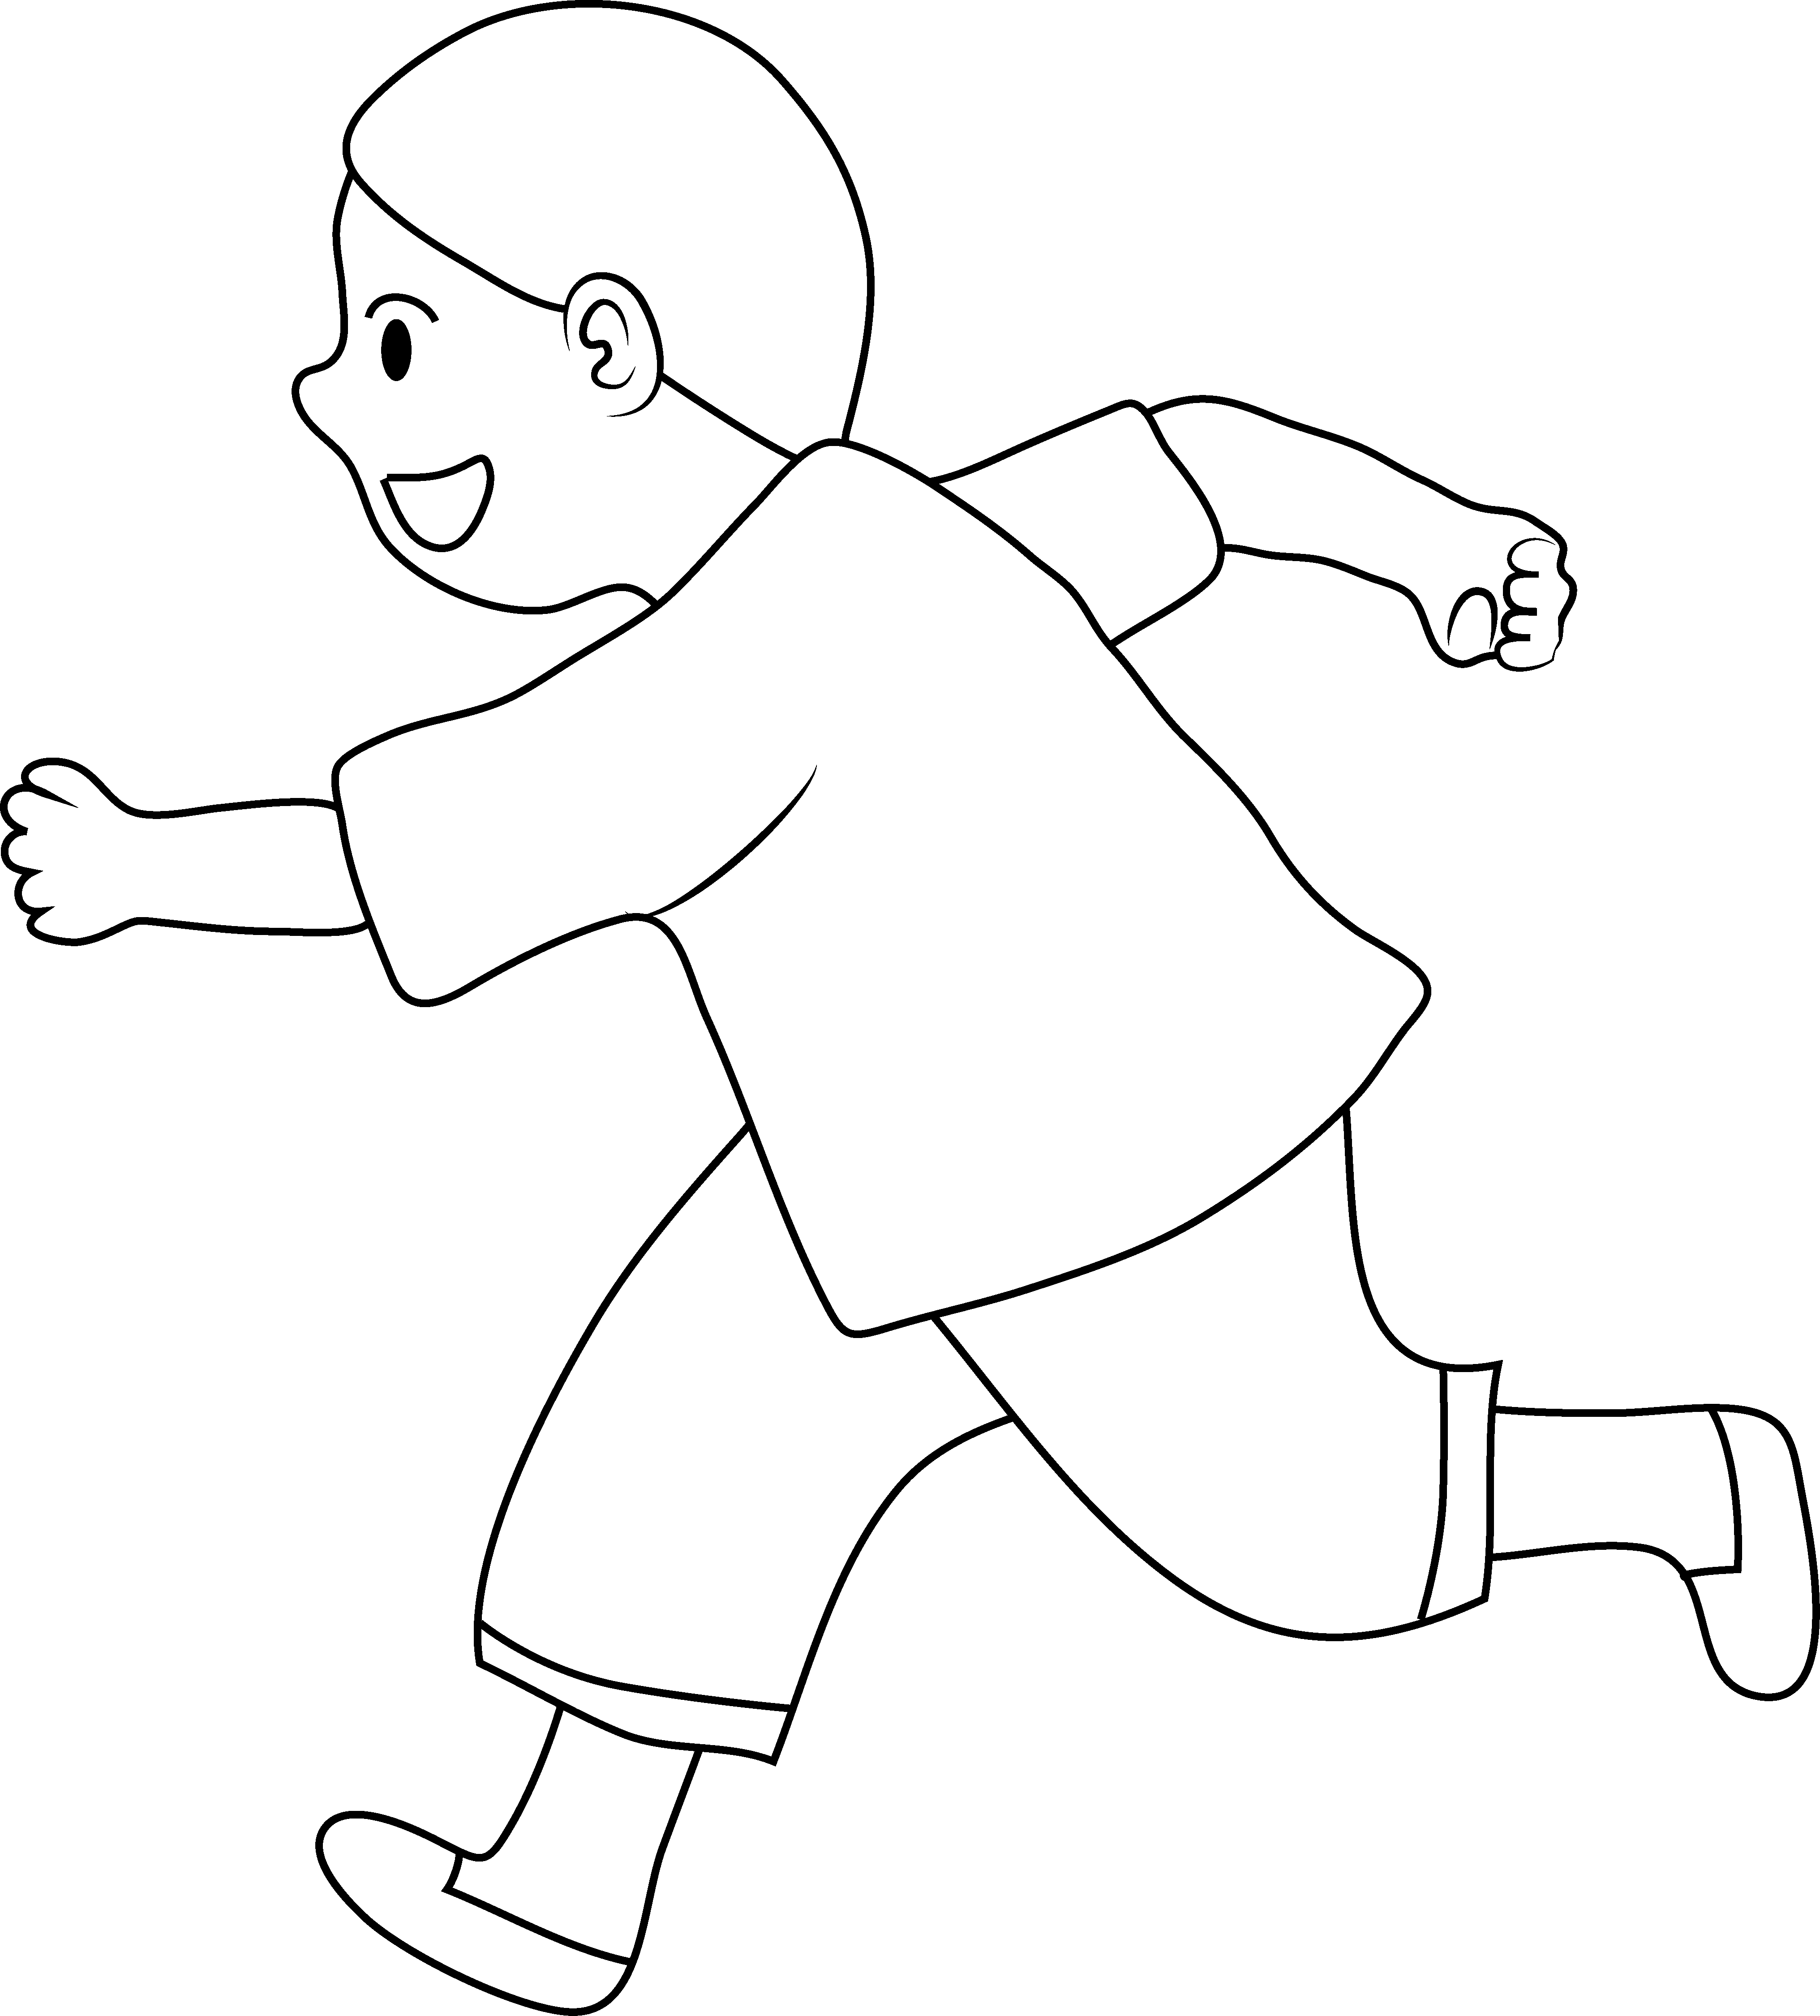 boy running coloring page cool running girl activity coloring page activities for coloring running boy page